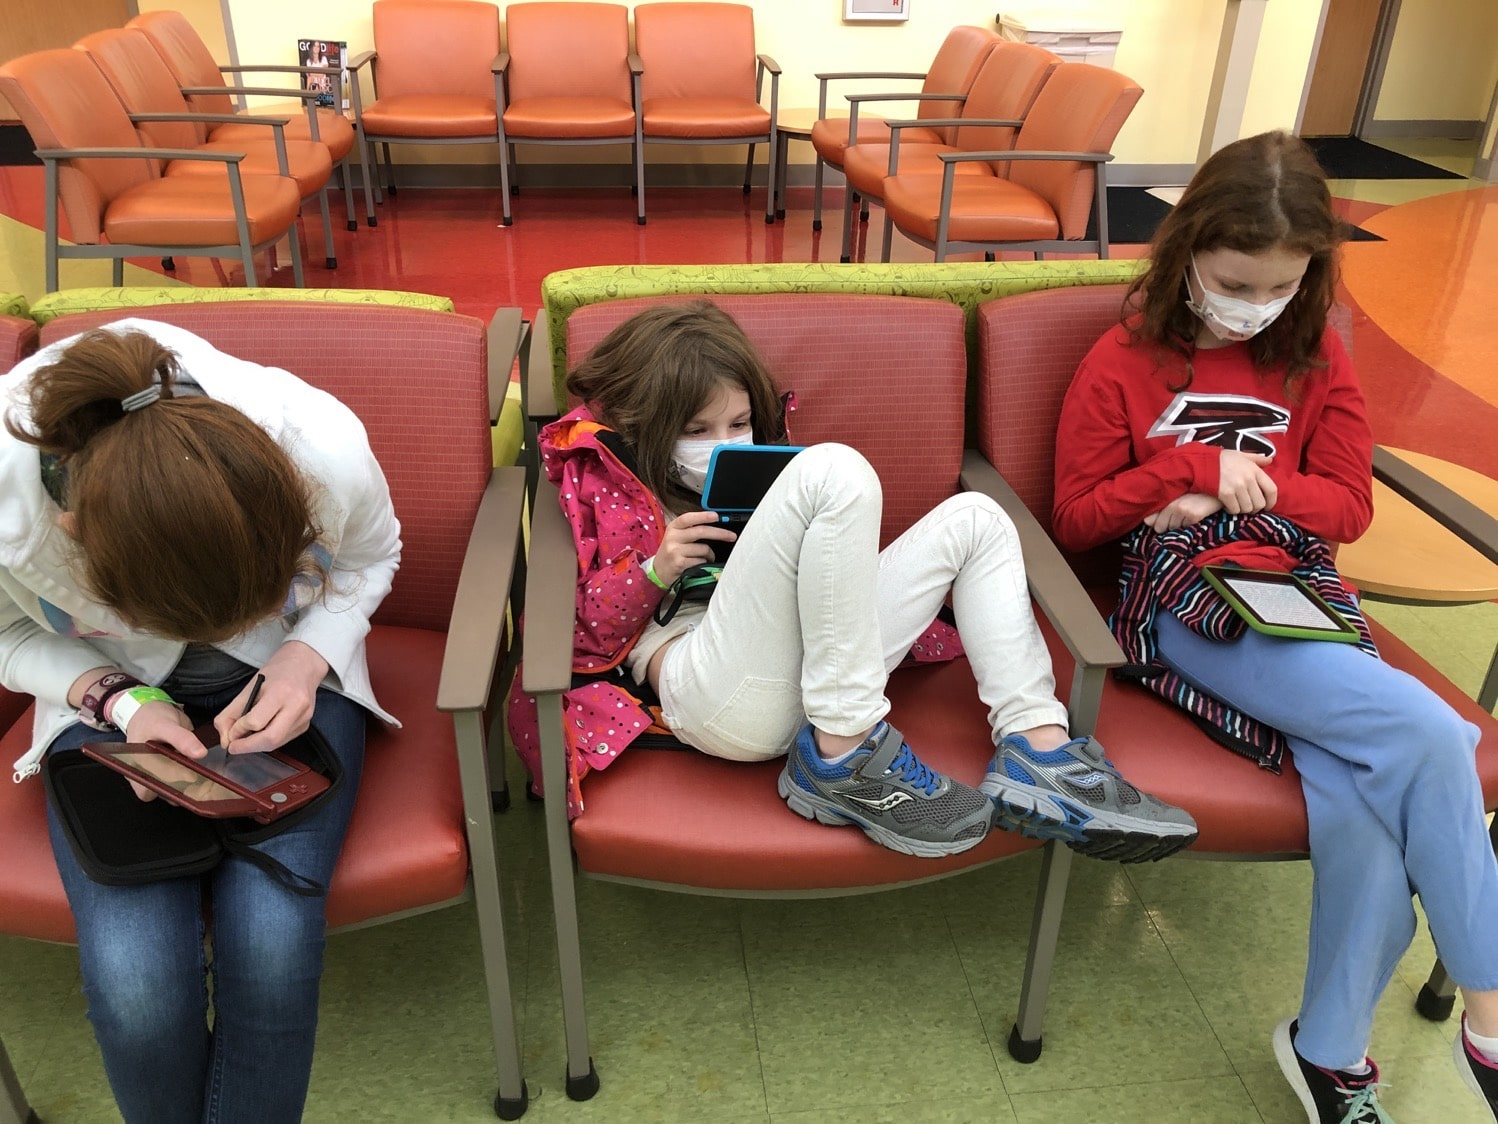 Back at urgent care | The plague